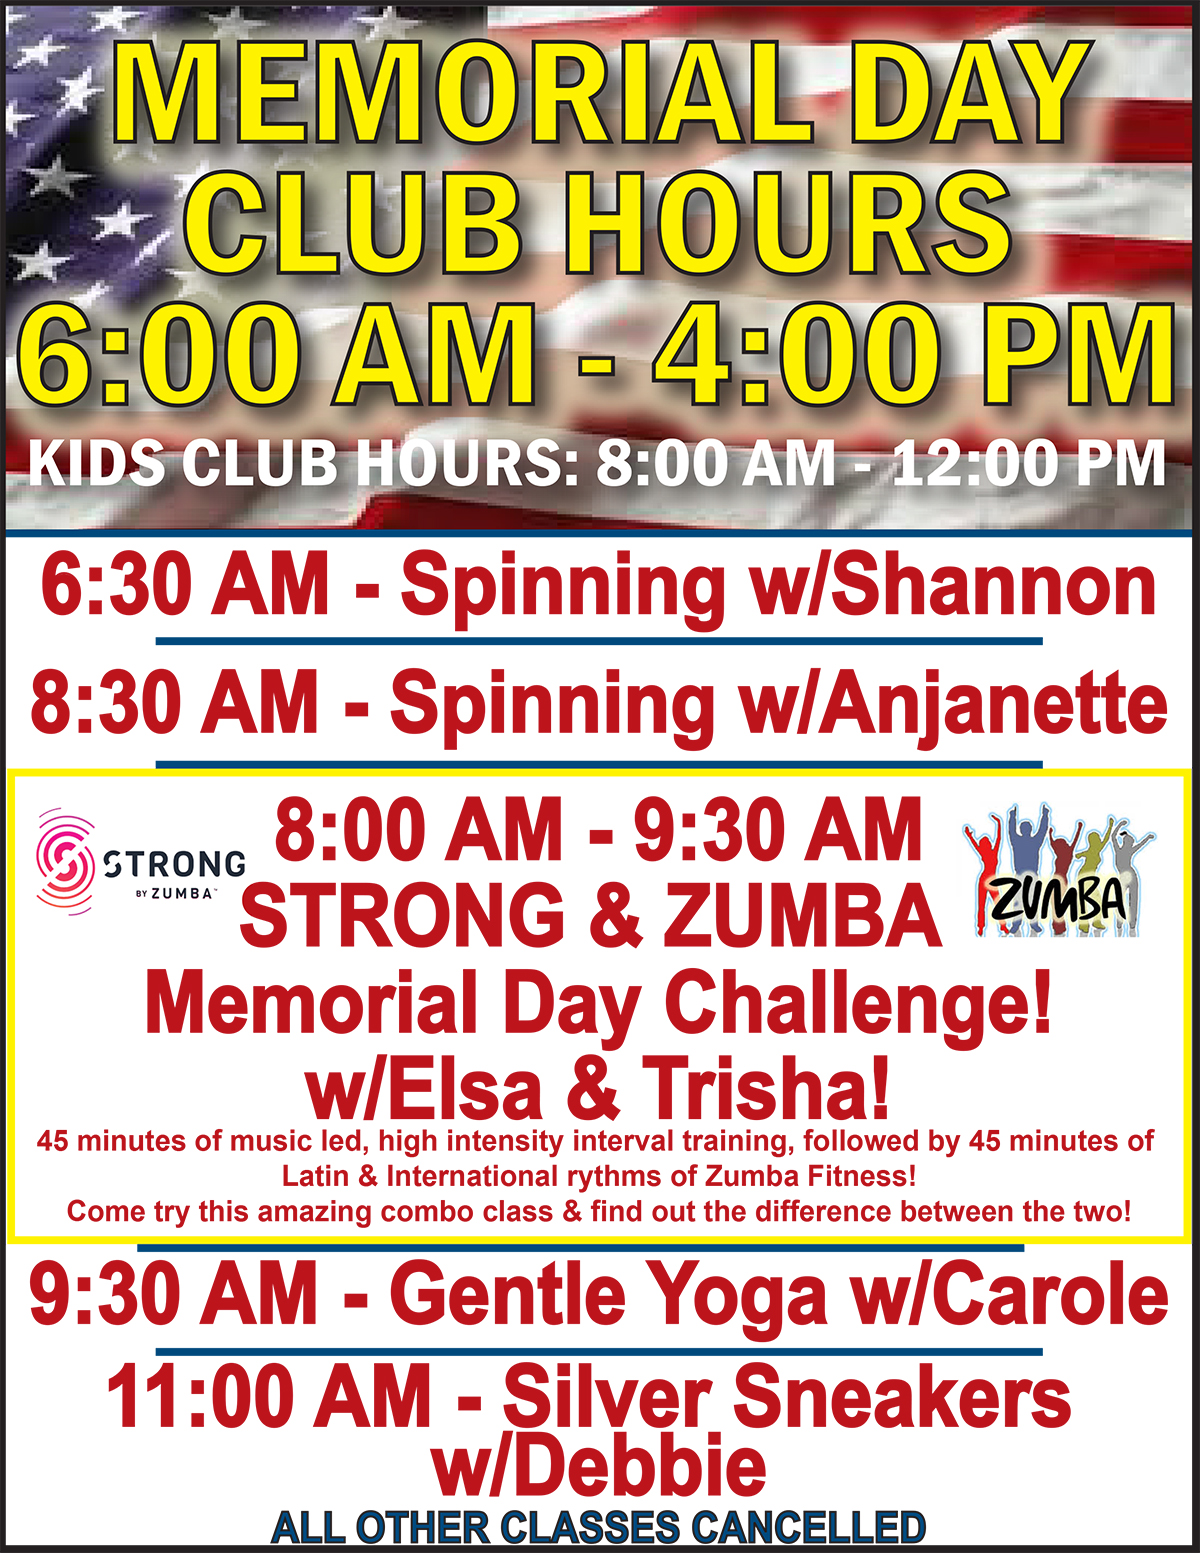 Memorial Day Hours & Classes